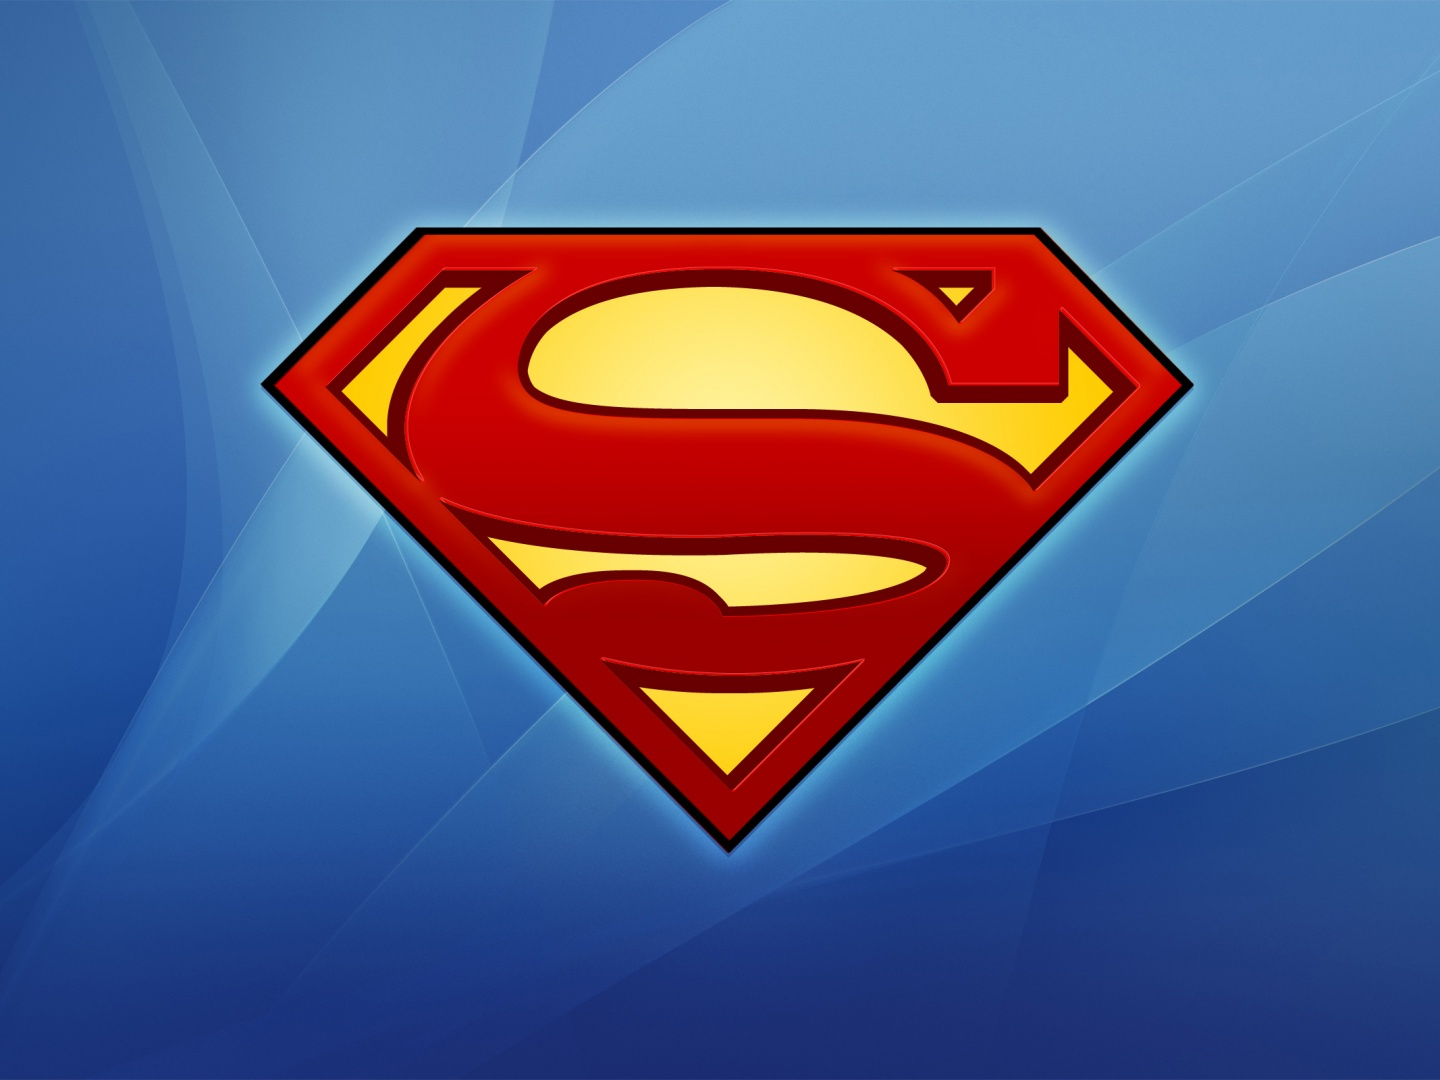 Superman Logo Wallpaper Desktop - WallpaperSafari